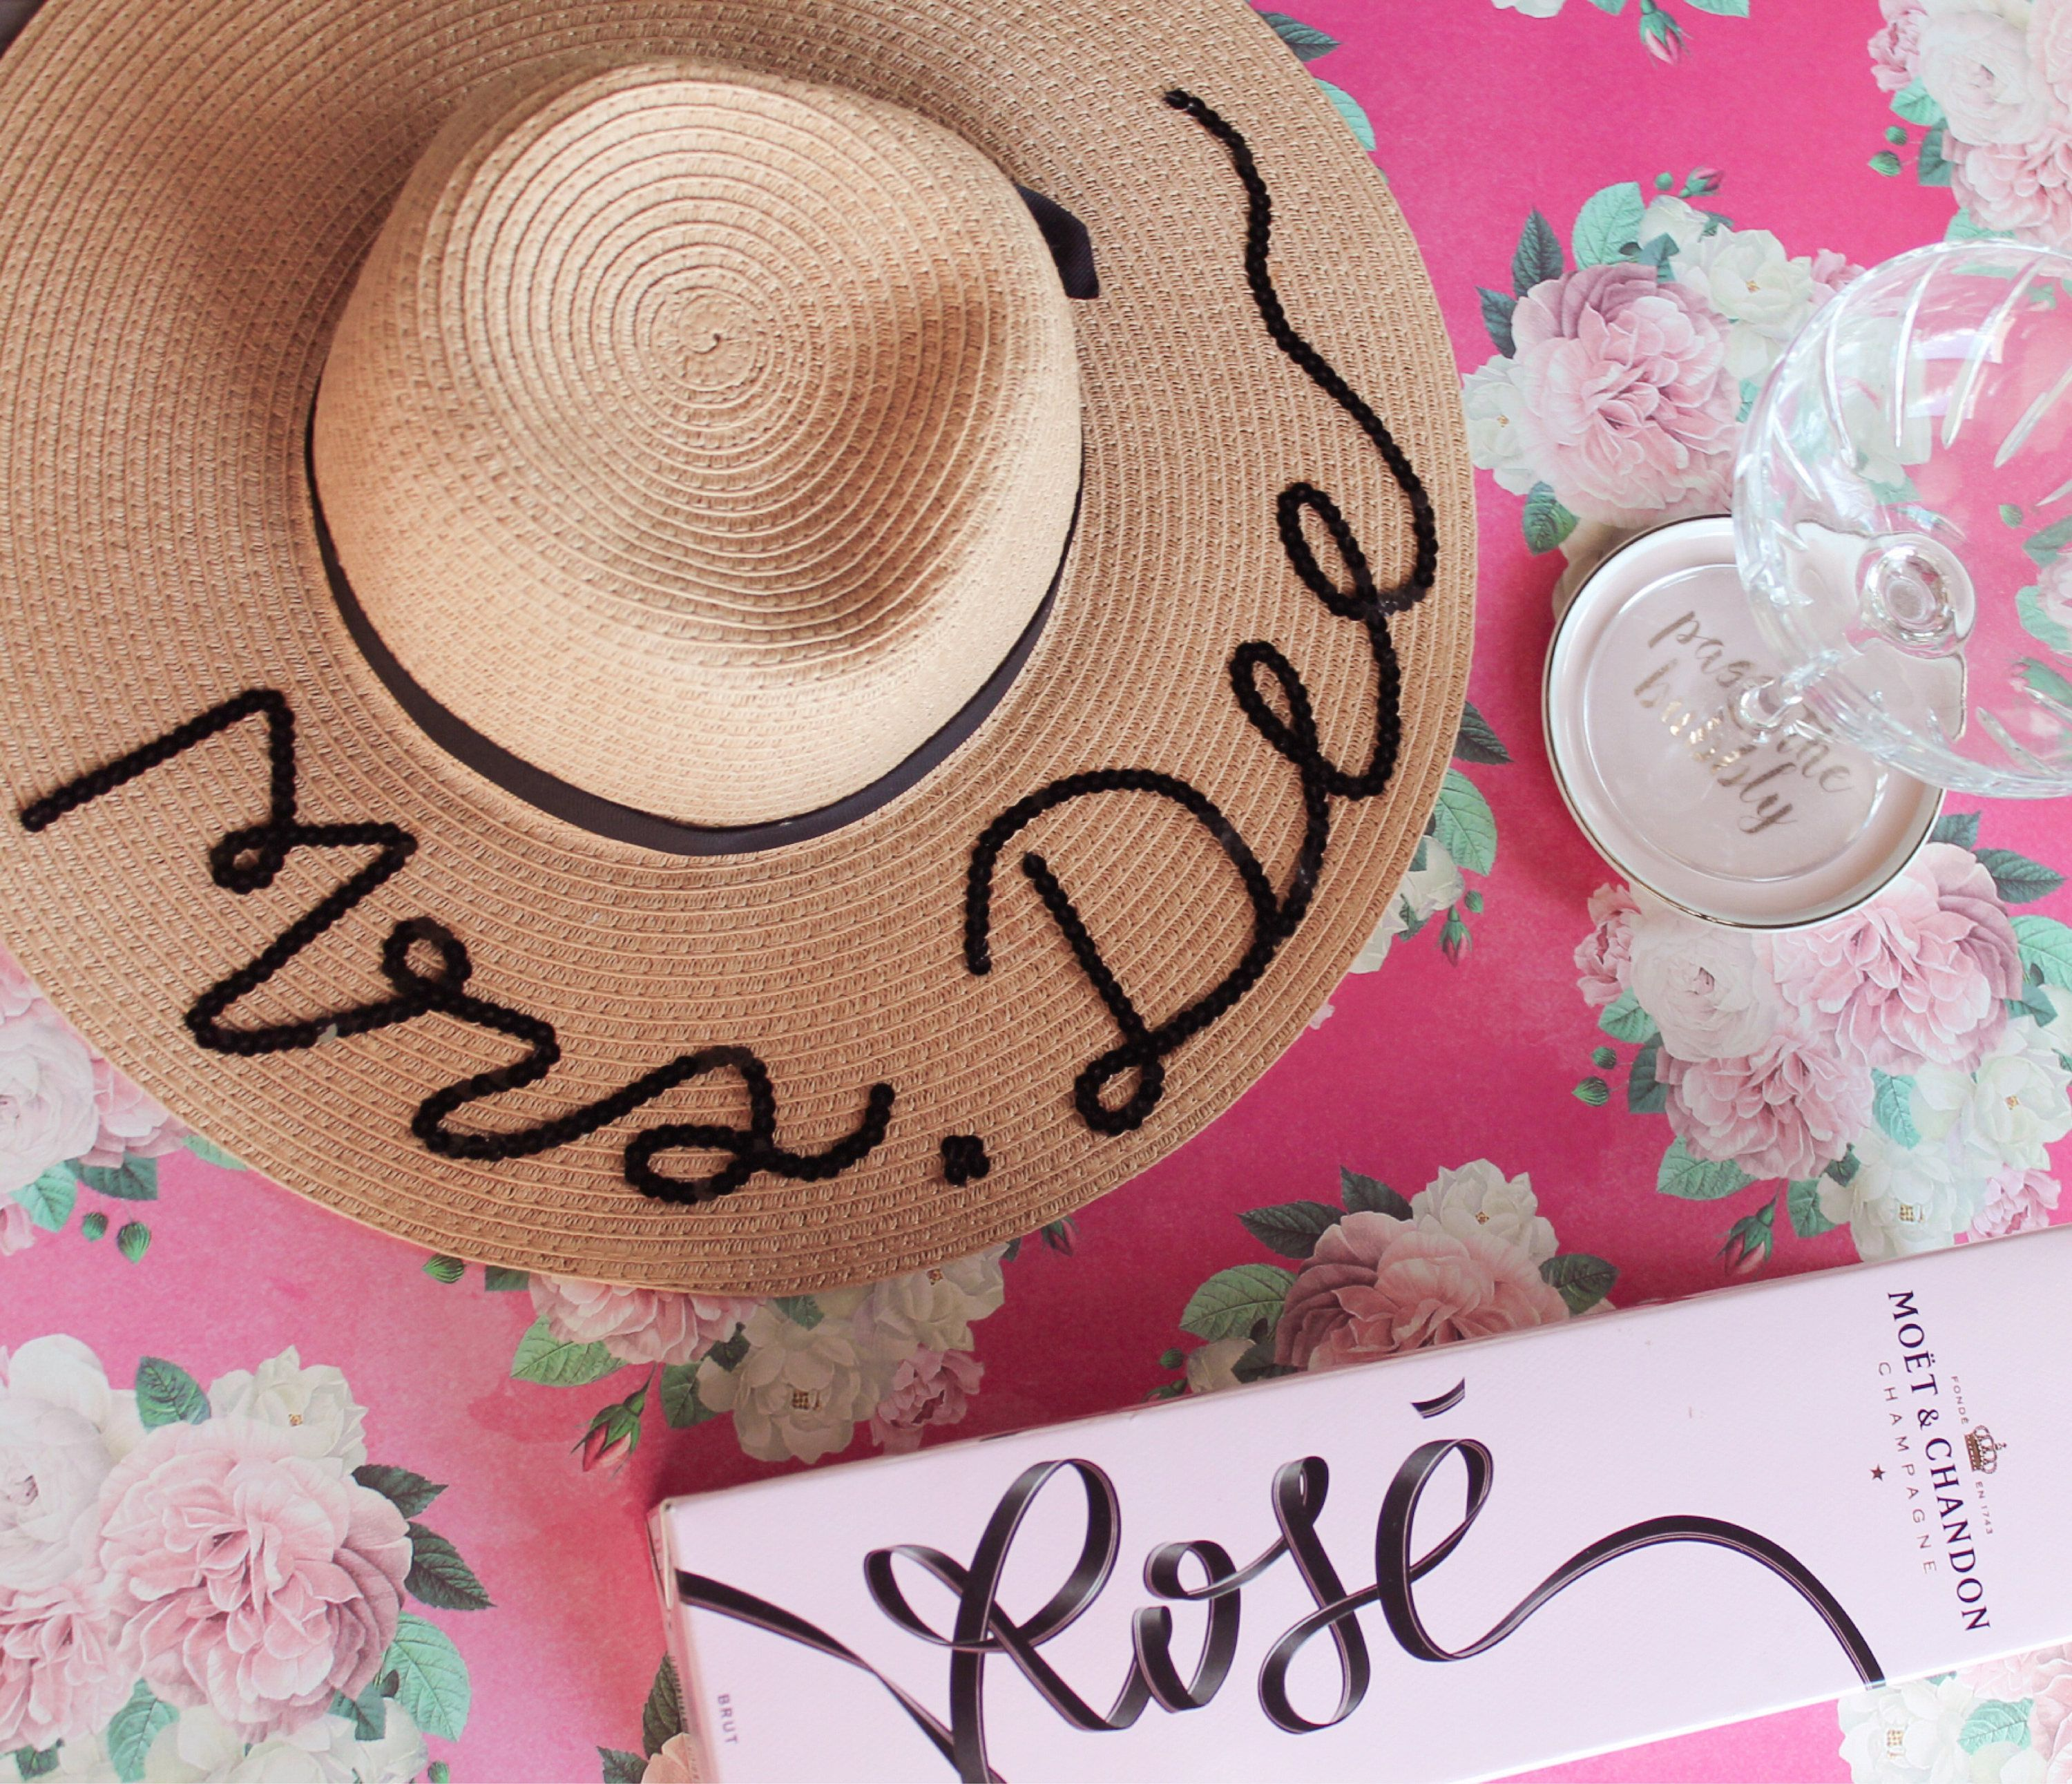 5b946885 Personalized floppy hat - Personalized sun hat - Floppy hat- Floppy beach  hat- Honeymoon hat - Bride gift - rose all day hat by champagneandcrafts on  Etsy